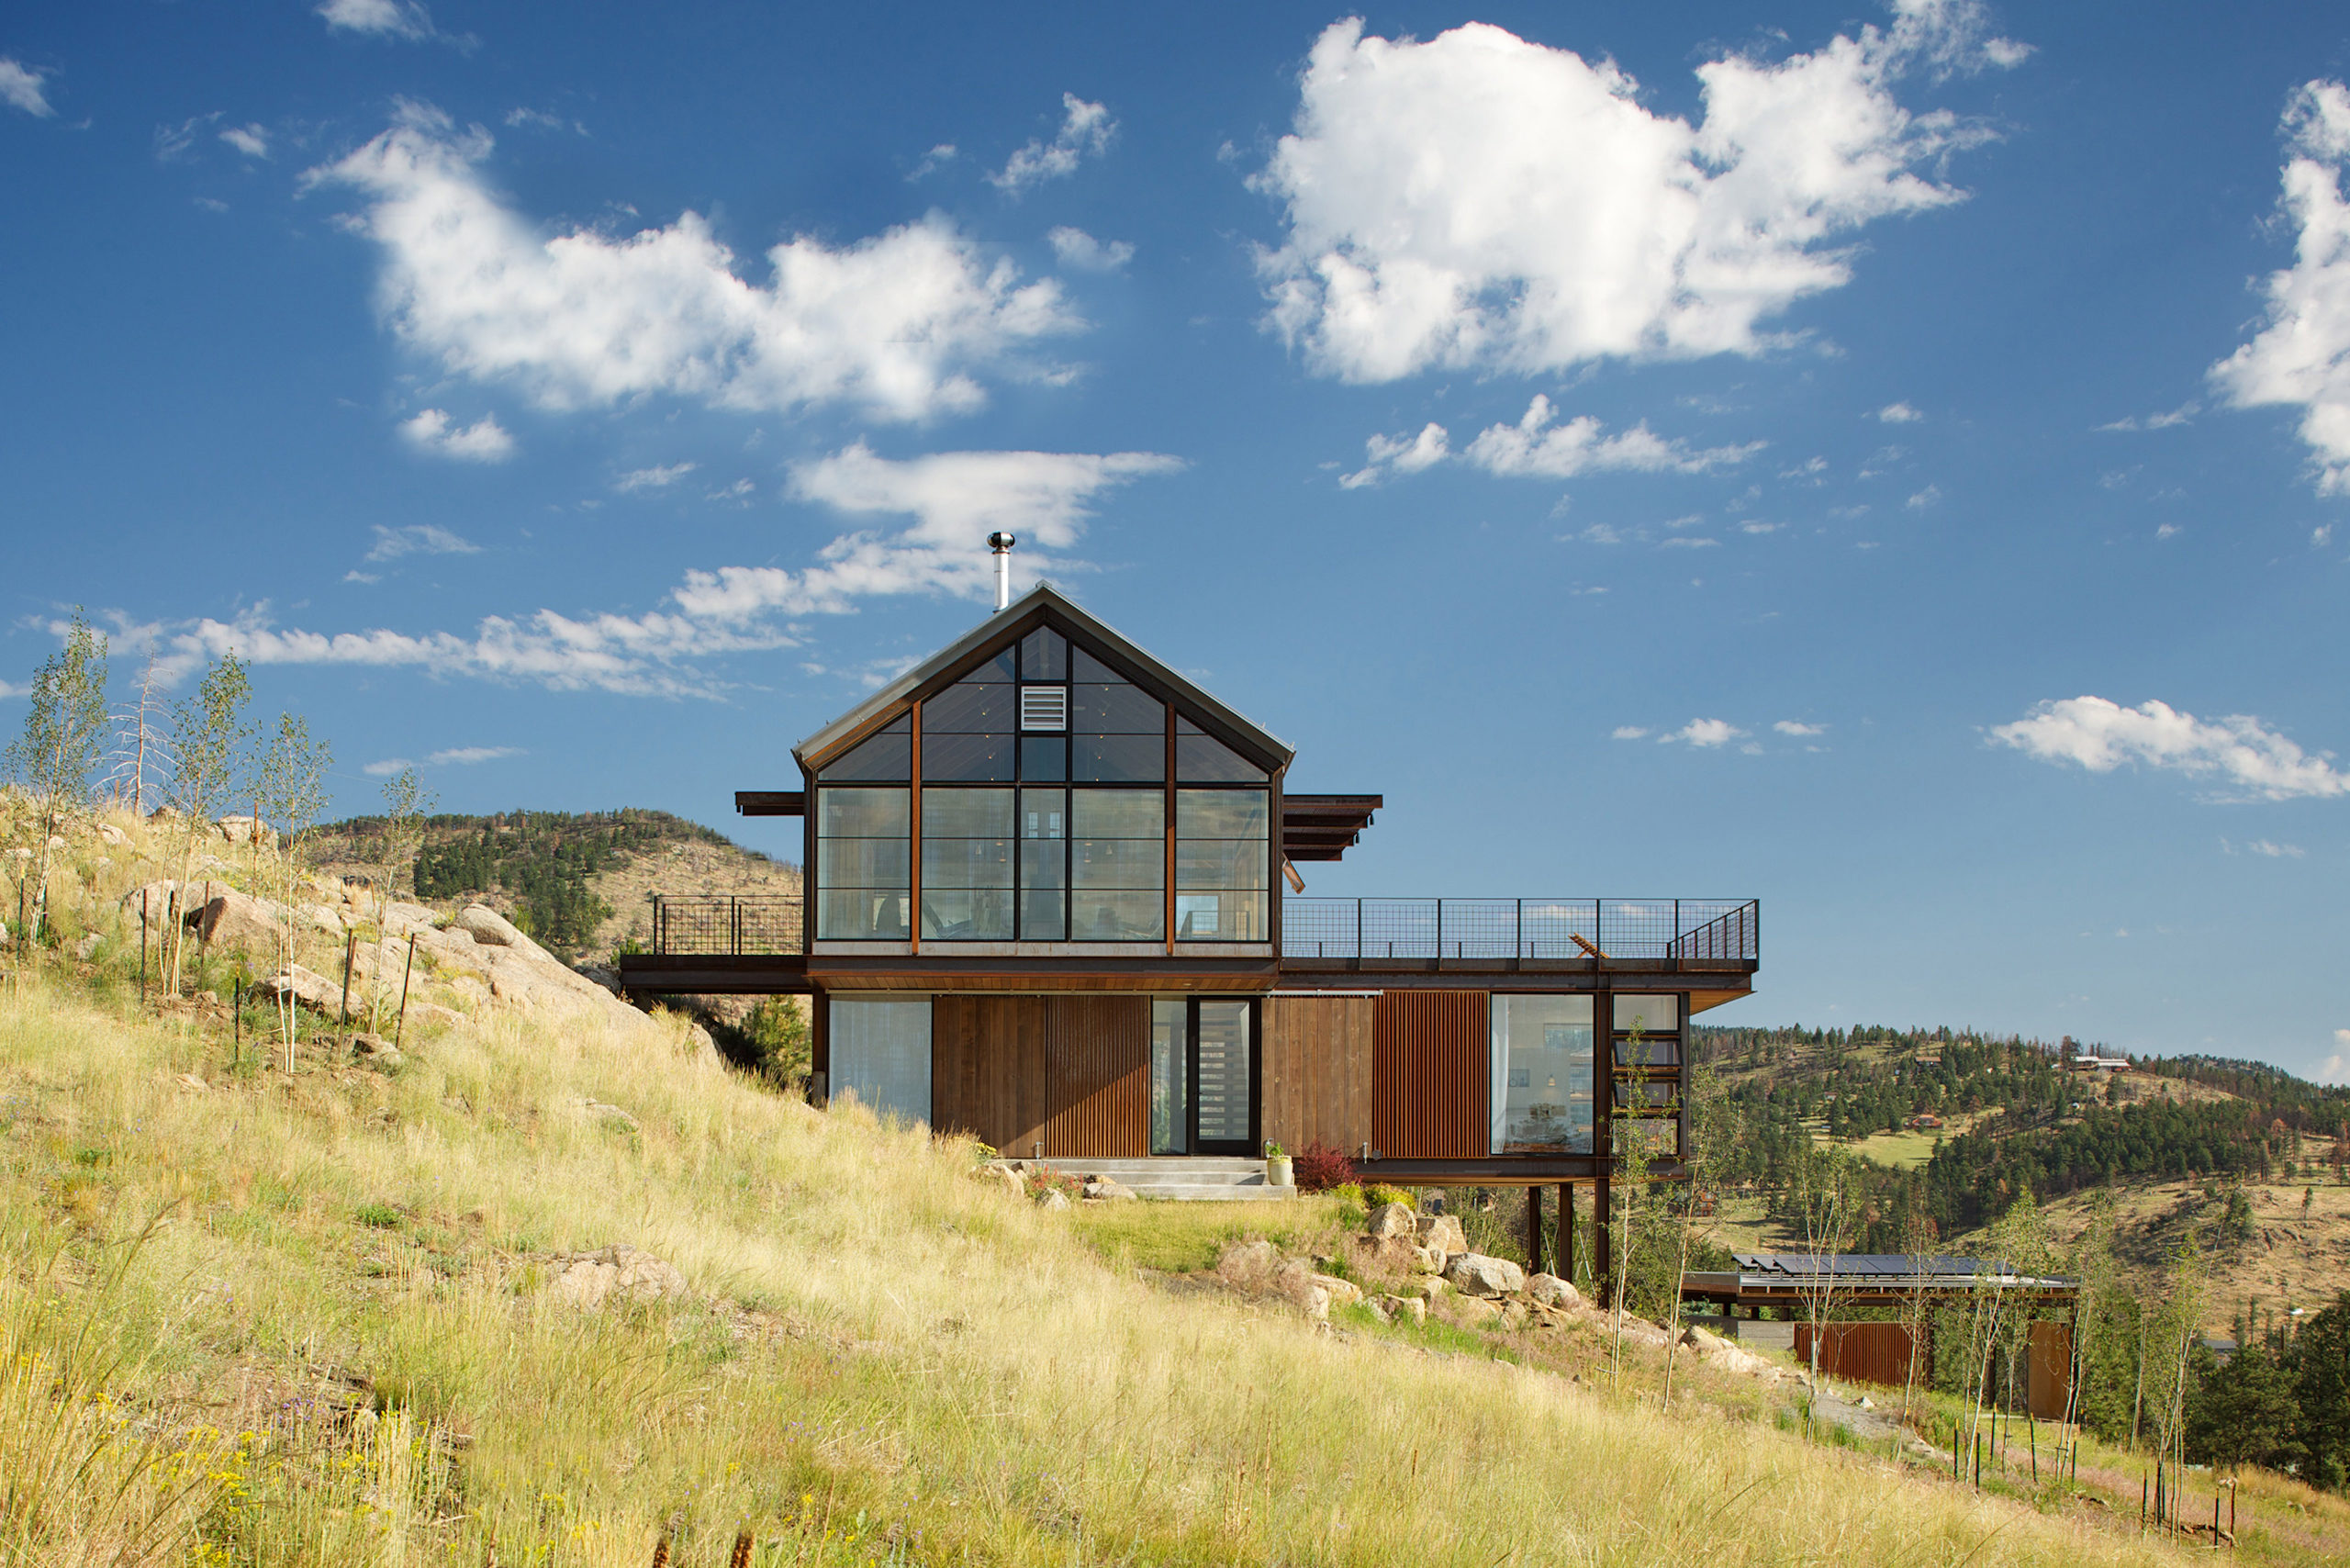 Sunshine Canyon House image 1